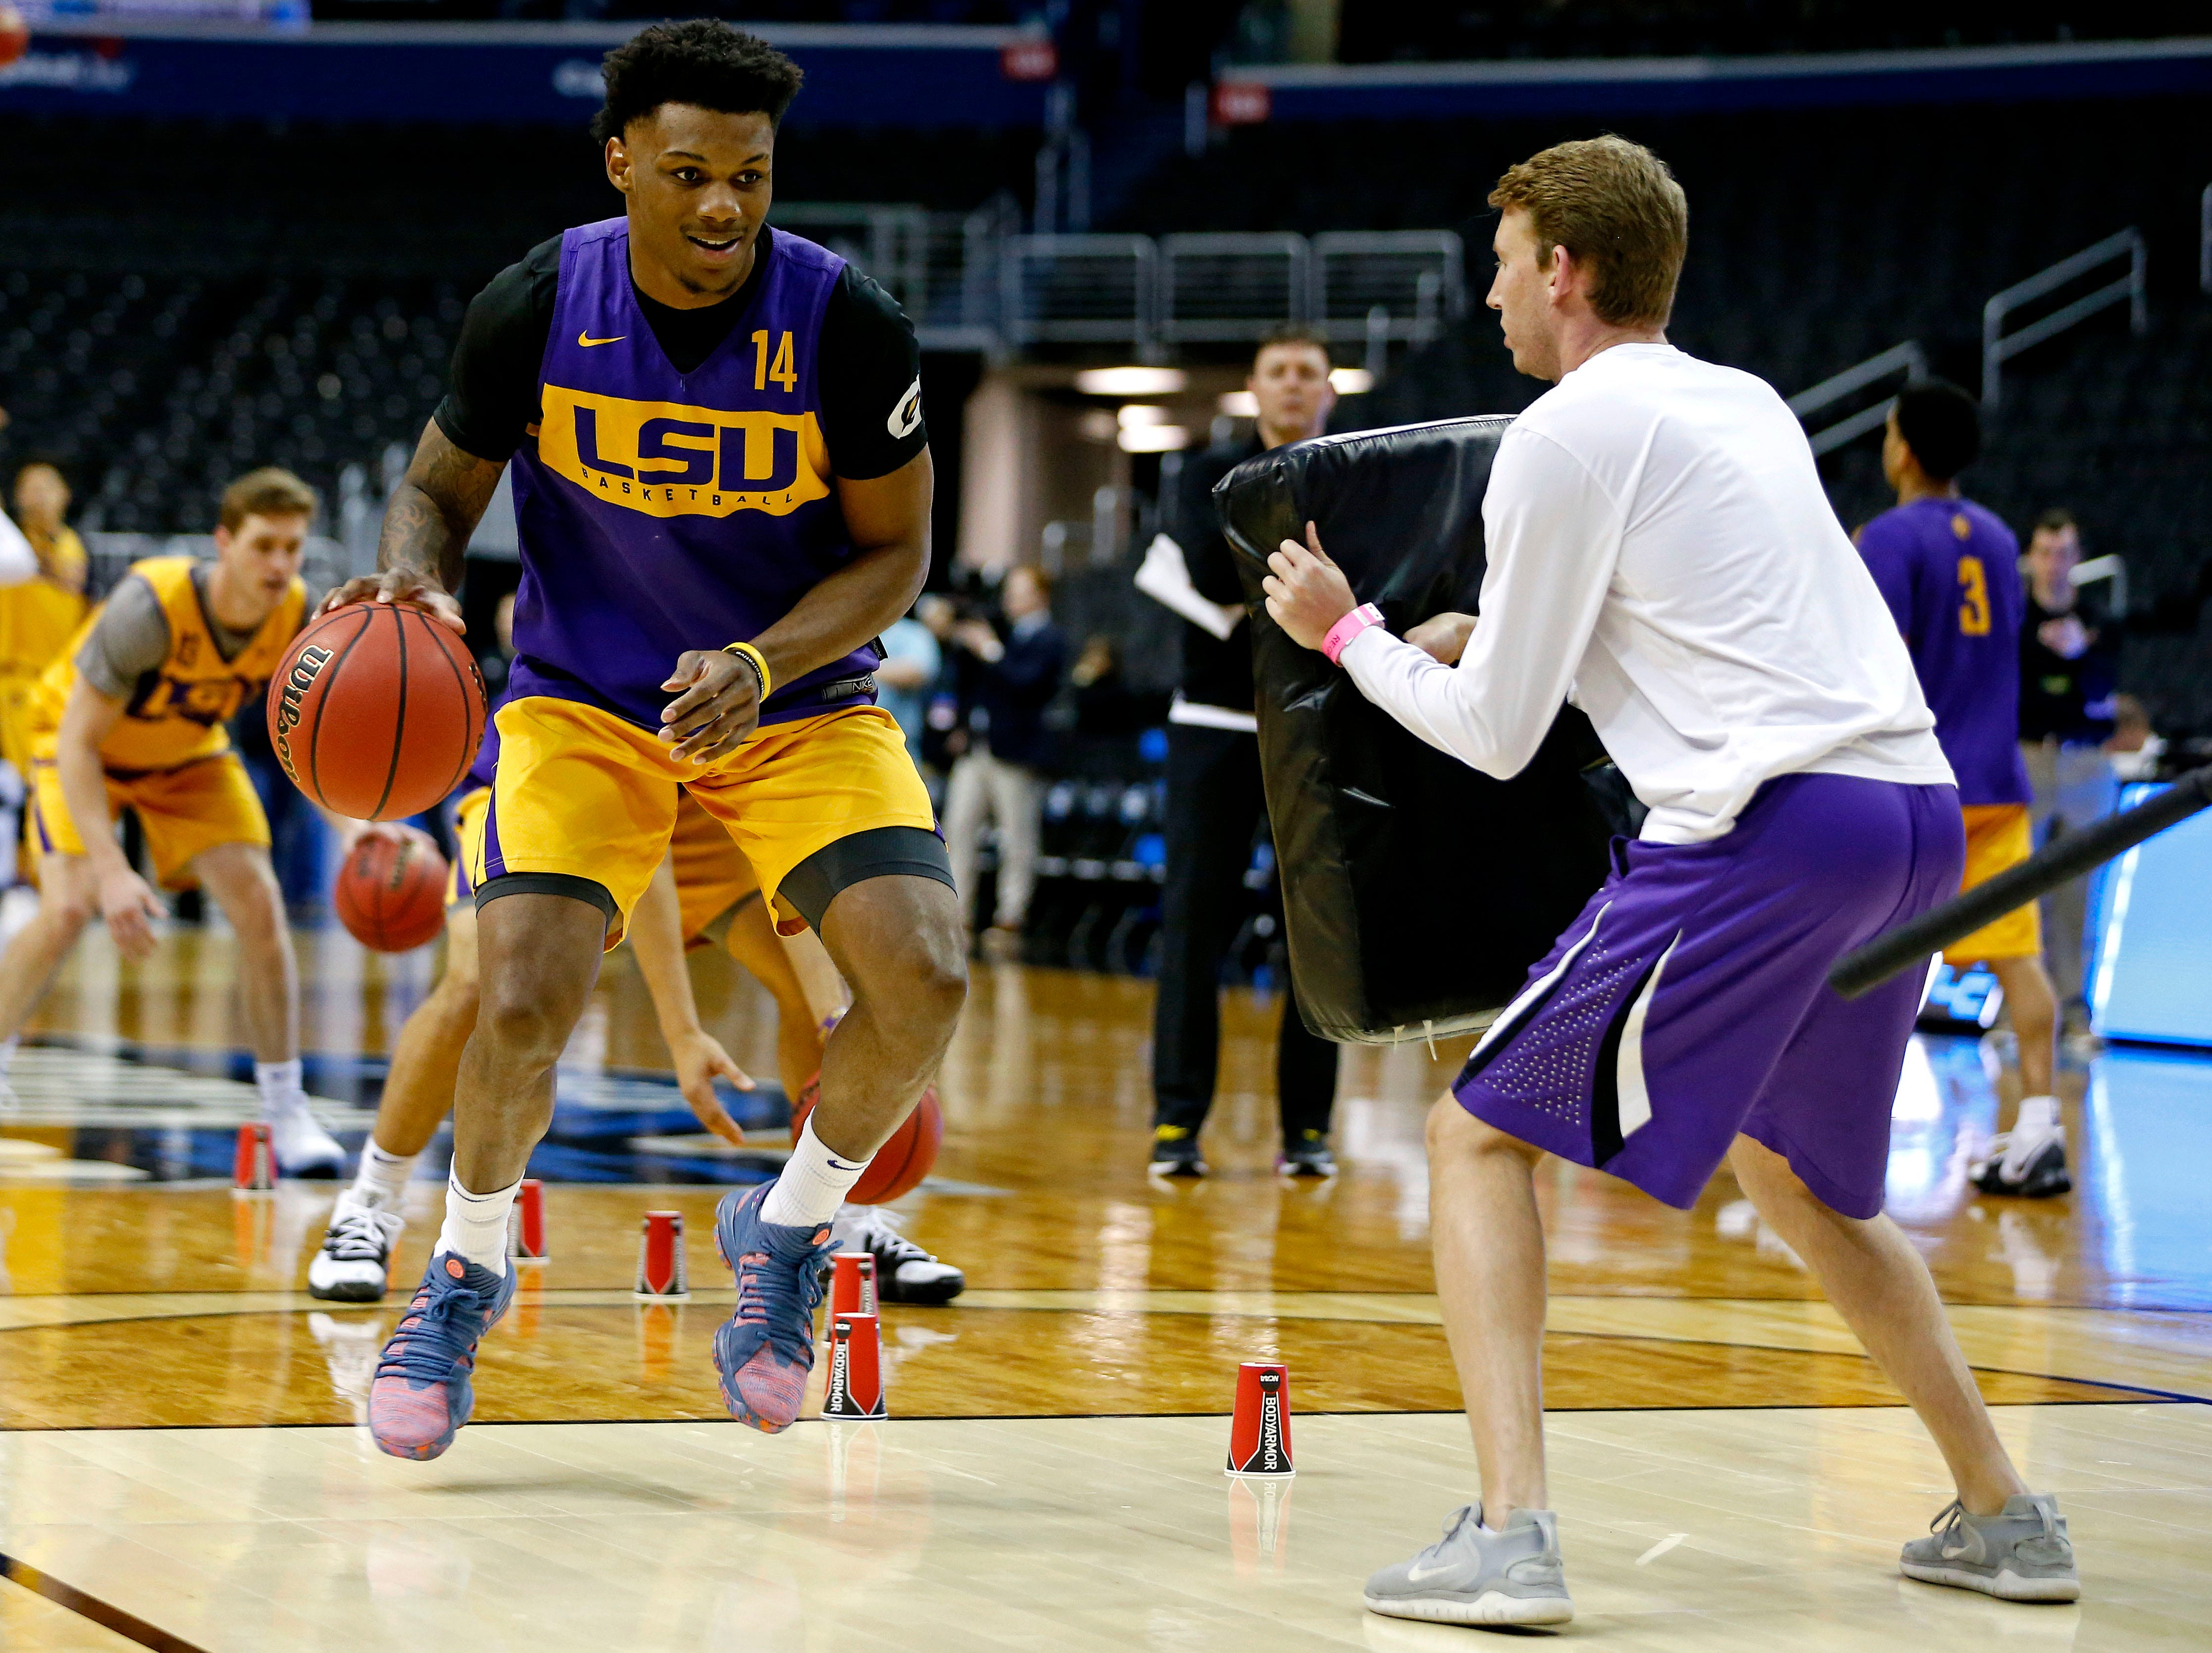 Mar 28, 2019; Washington, DC, USA; LSU Tigers guard Marlon Taylor (14) handles the ball during practice for the east regional of the 2019 NCAA Tournament at Capital One Arena. Mandatory Credit: Amber Searls-USA TODAY Sports